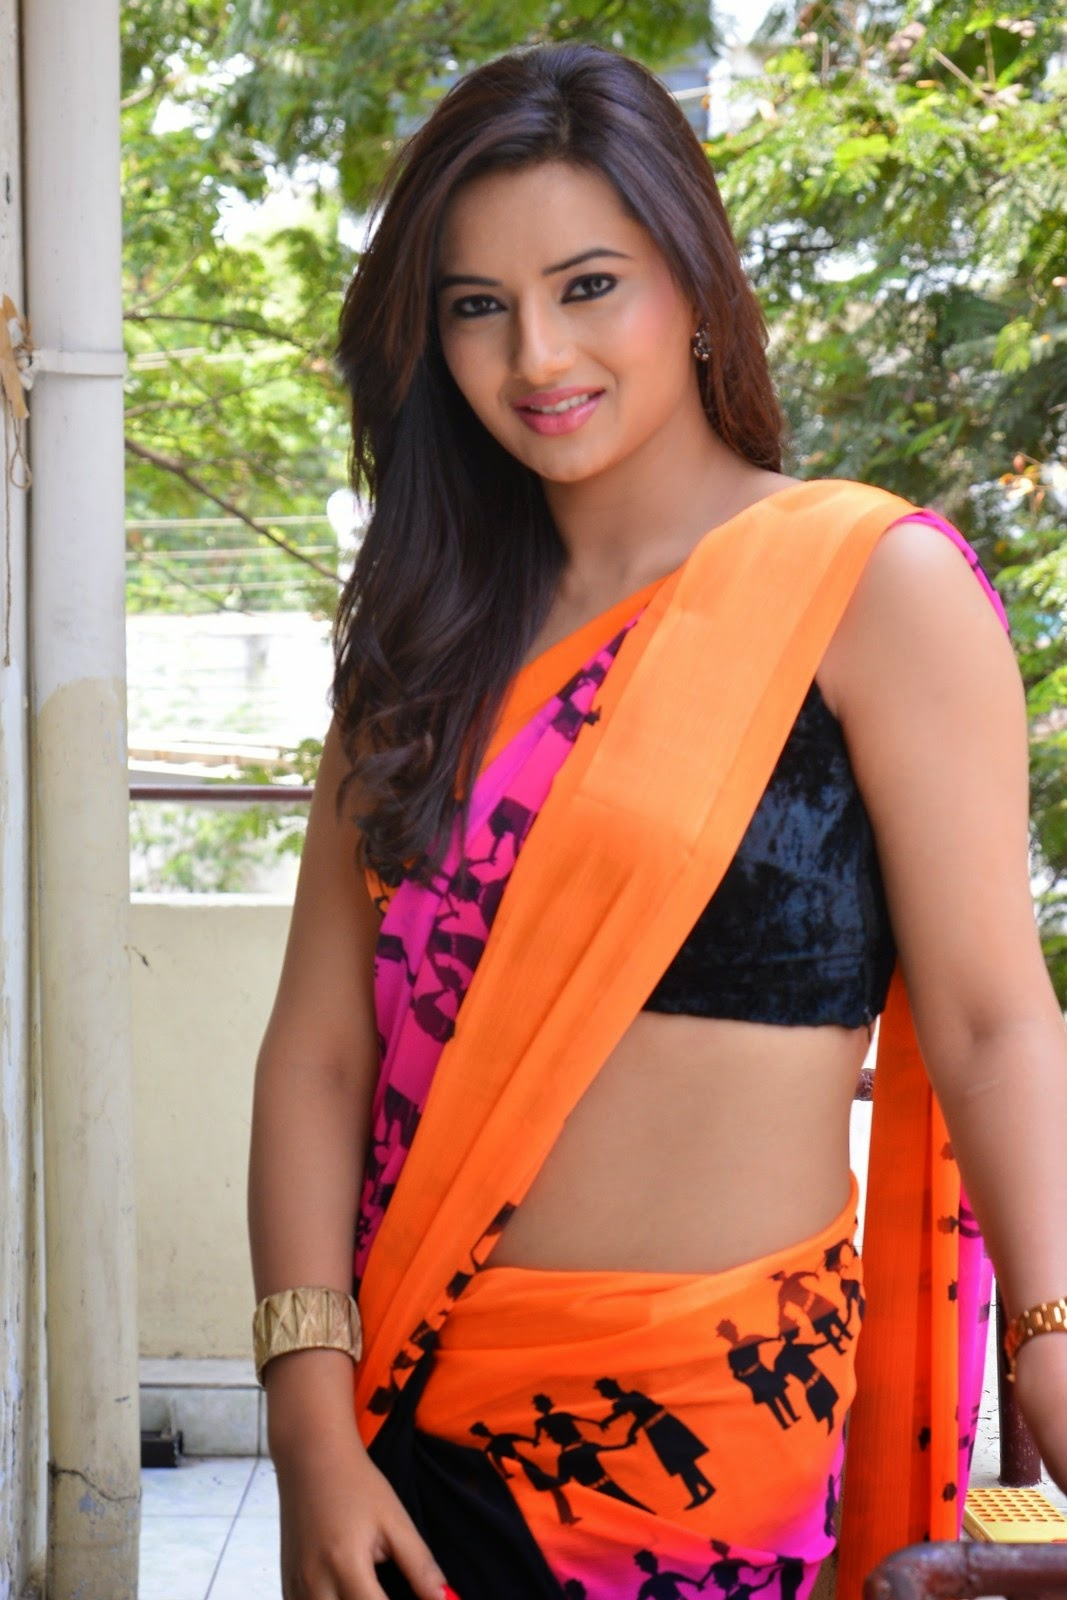 Actress Isha Chawla Latest Hot Navel Saree Photo Stills Latest Indian Hollywood Movies Updates Branding Online And Actress Gallery